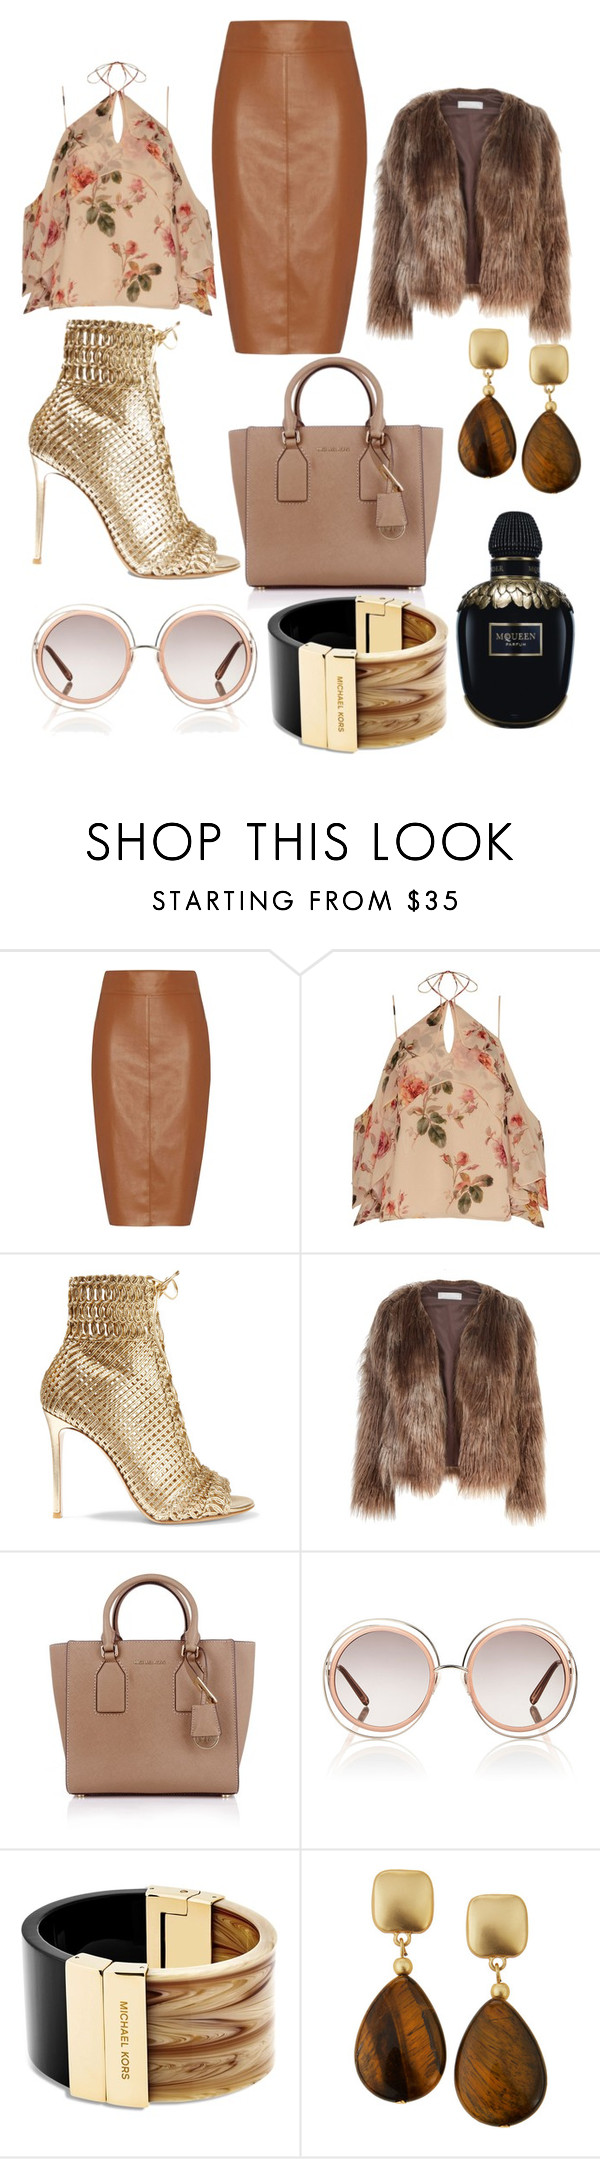 """Untitled #452"" by gwendoline-687 ❤ liked on Polyvore featuring Bailey 44, Exclusive for Intermix, Gianvito Rossi, Related, Michael Kors, Chloé, Kenneth Jay Lane and Alexander McQueen"